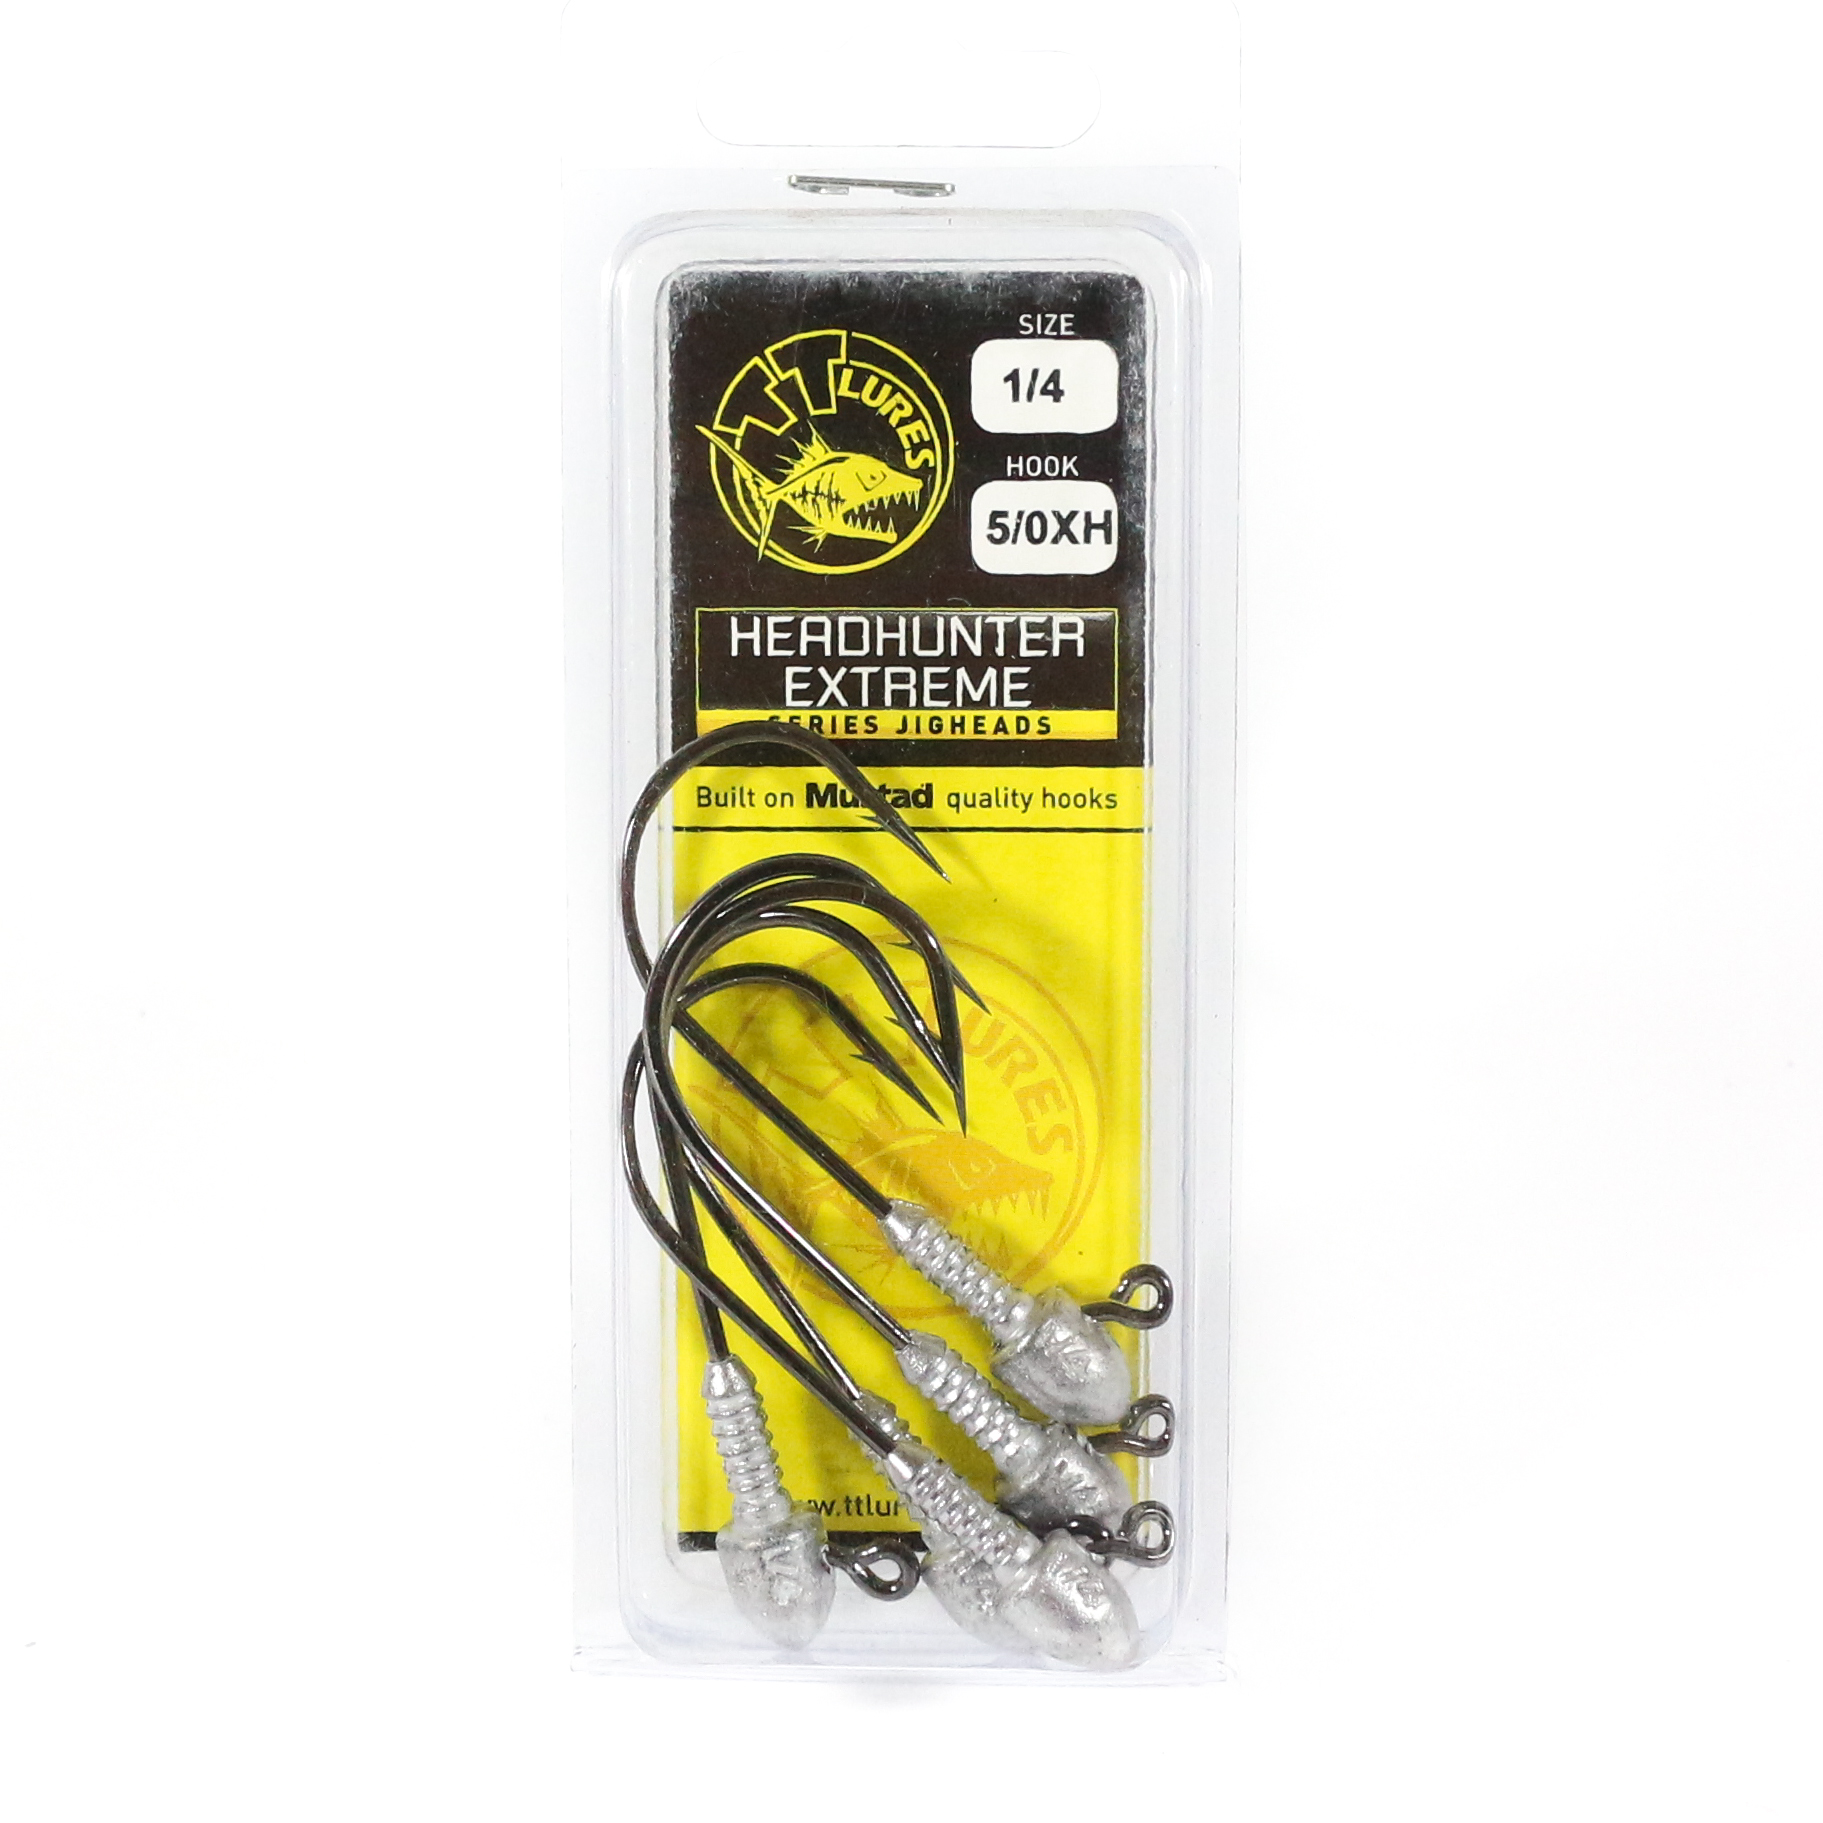 Tackle Tactics TT Head Hunter Extreme Jig Head 1/4 oz 5/0 XH 5 per pack (1821)